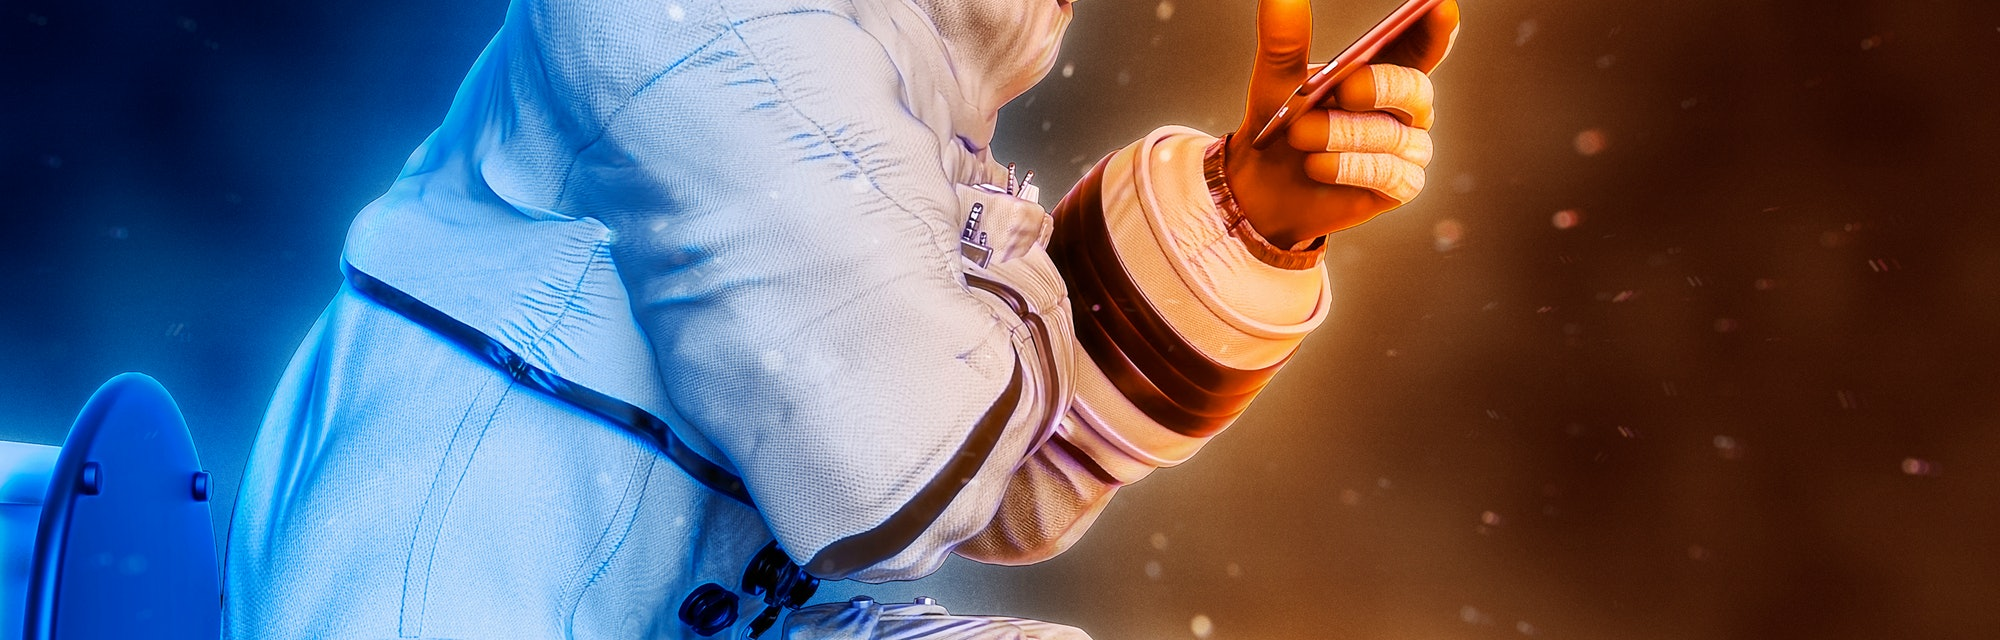 astronaut reading a tablet on the toilet close up side view, 3d illustration